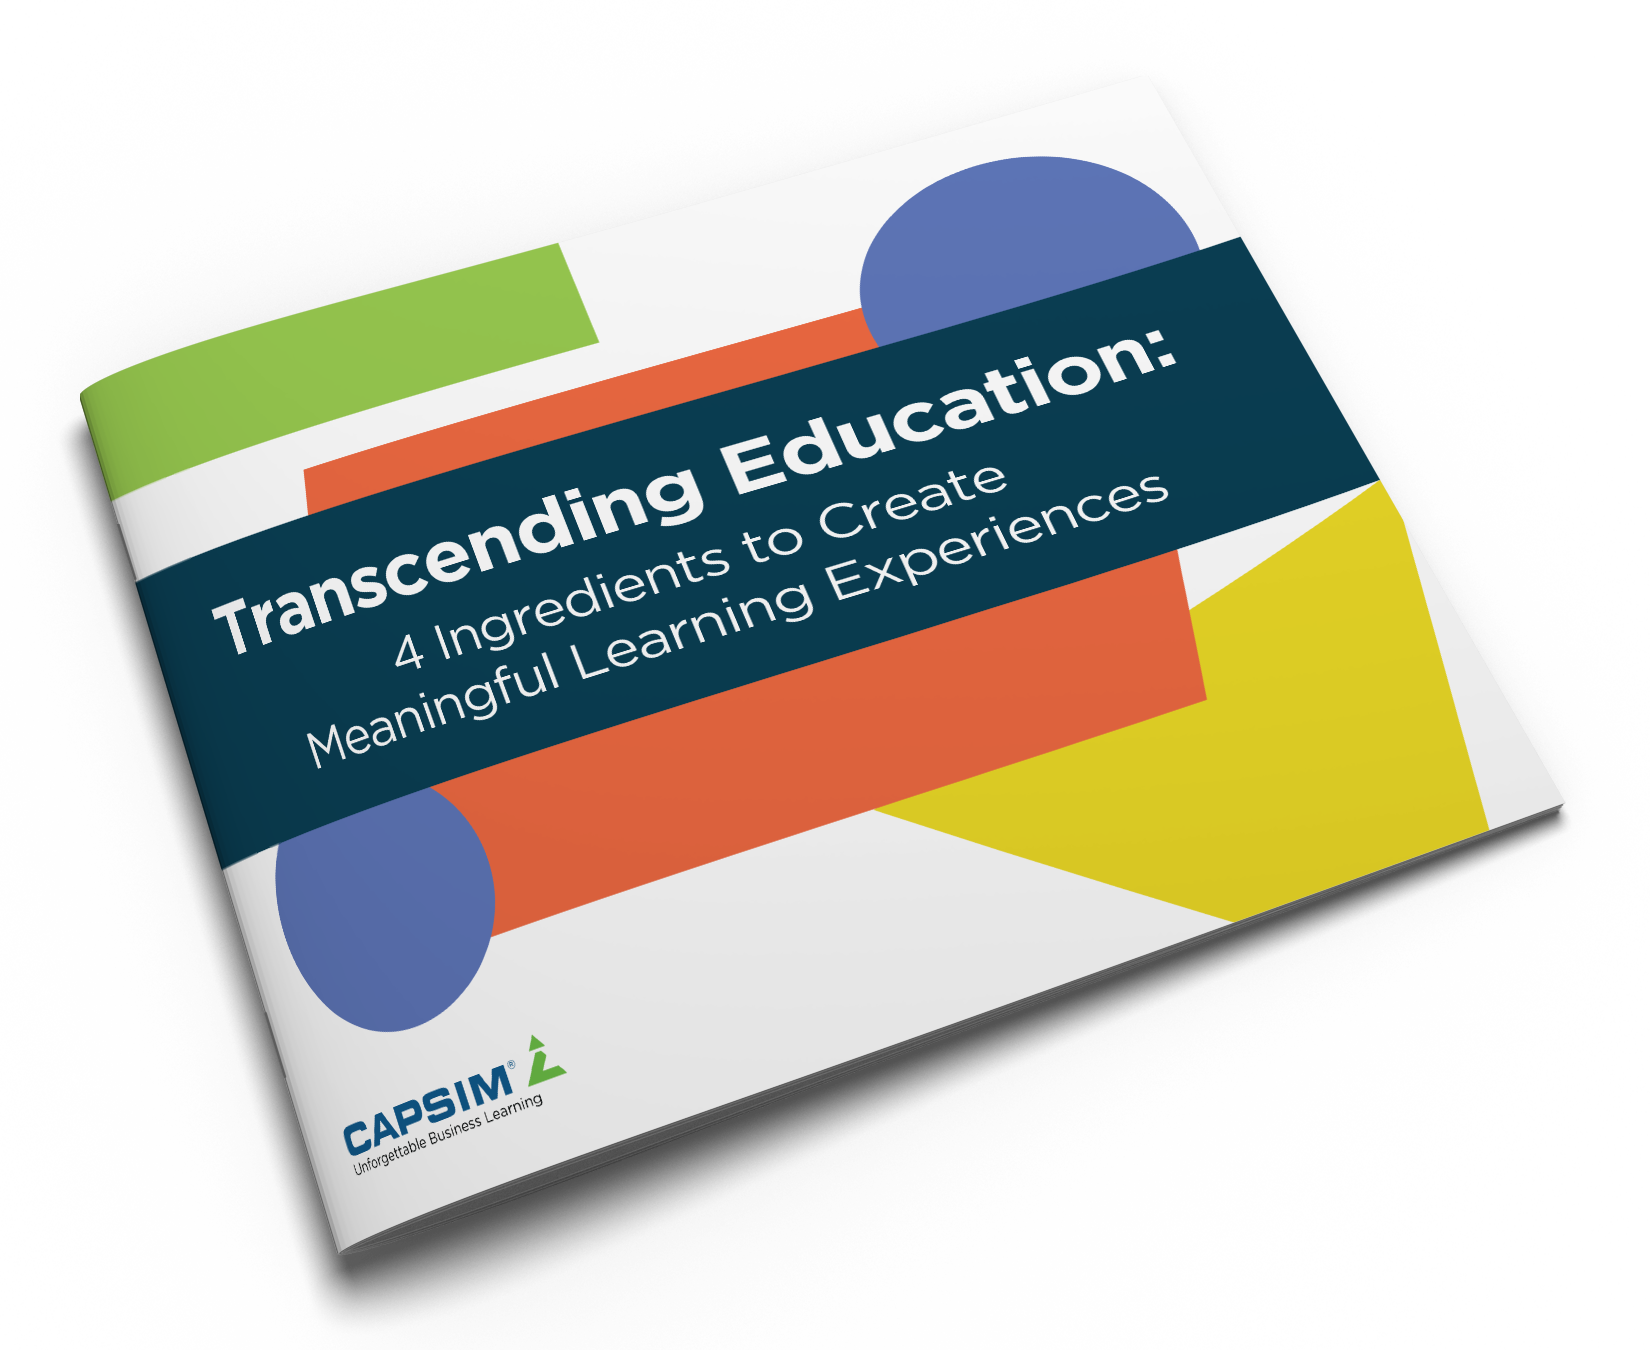 """Book with a colorful cover titled """"transcending education: 4 ingredients to create meaningful learning experiences"""". Authored by Capsim."""